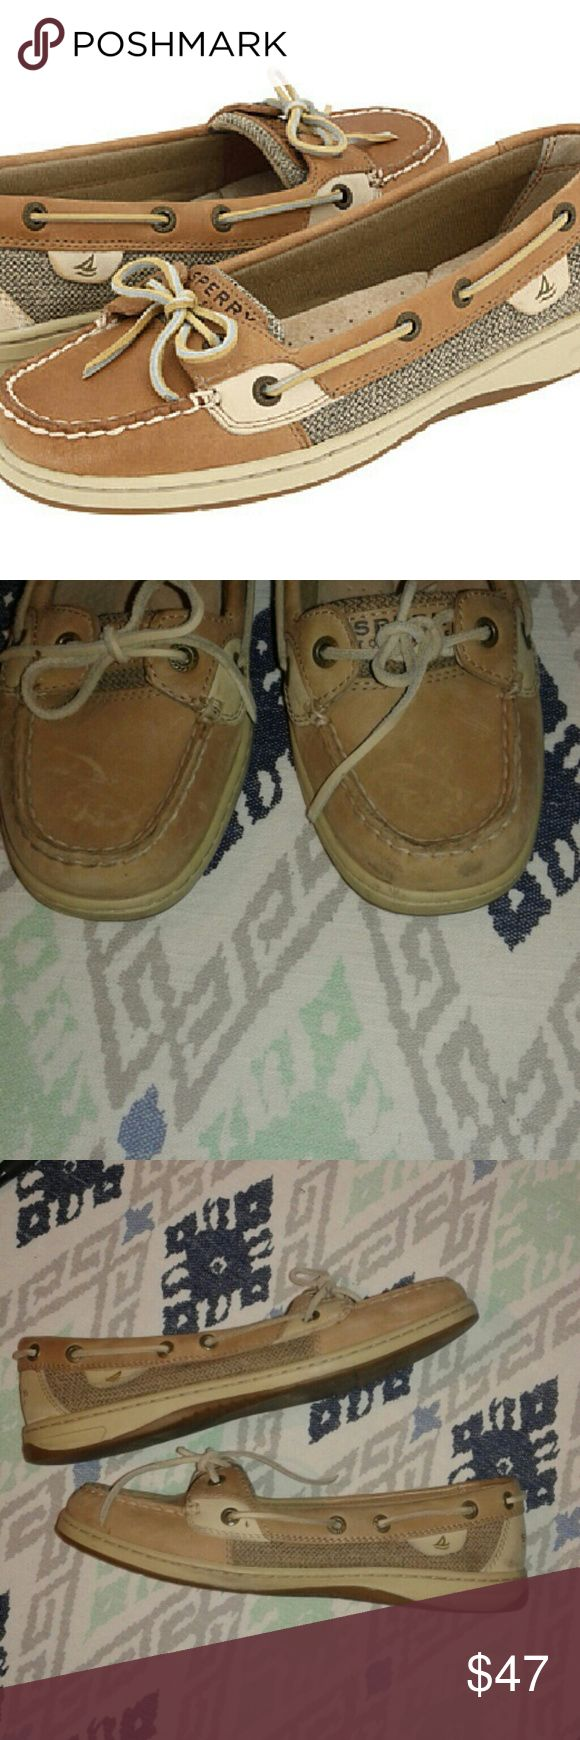 Sperry Top-Sider Angelfish boat shoes Sz 8 Womens. Color is a bit lighter tan than the cover photo. Pics 2-4 are the actual shoes for sale. Excellent used condition with a couple light smudges at toe area. Sperry Top-Sider Shoes Flats & Loafers